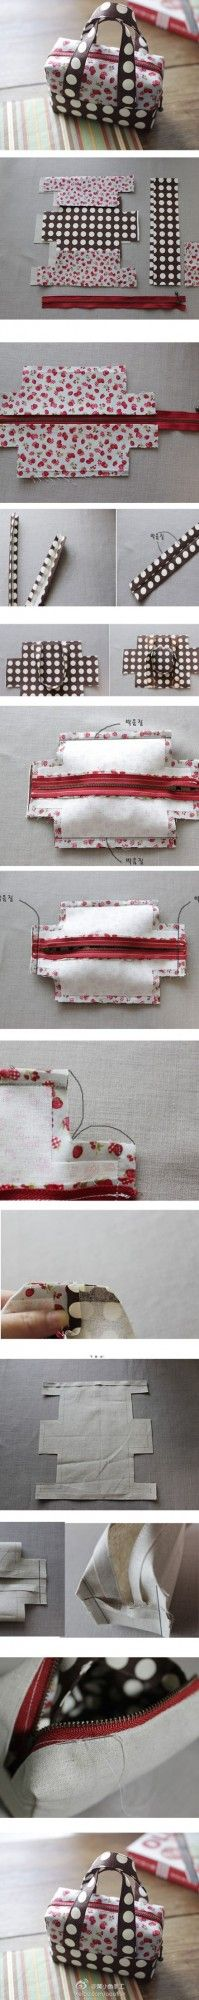 23 Useful DIY Ideas You Must Try - DIY Mini Tote